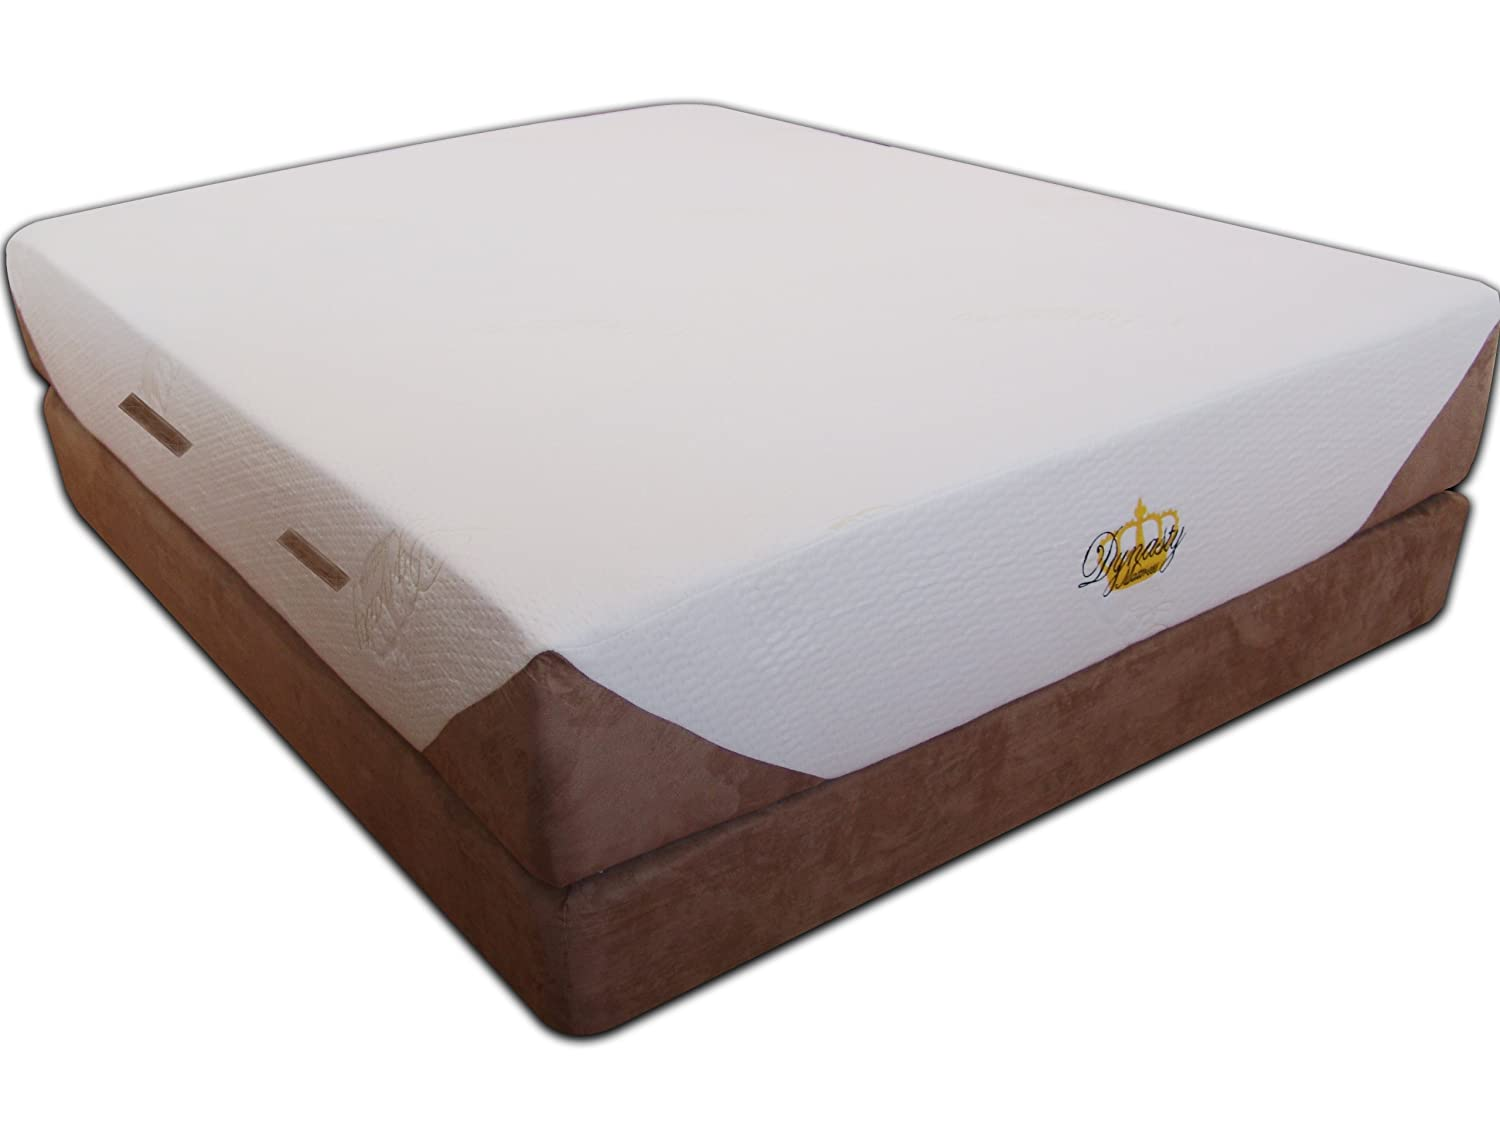 Dynastymattress Cool Breeze 12 Inch Gel Memory Foam Mattress Bed Mattress Sale